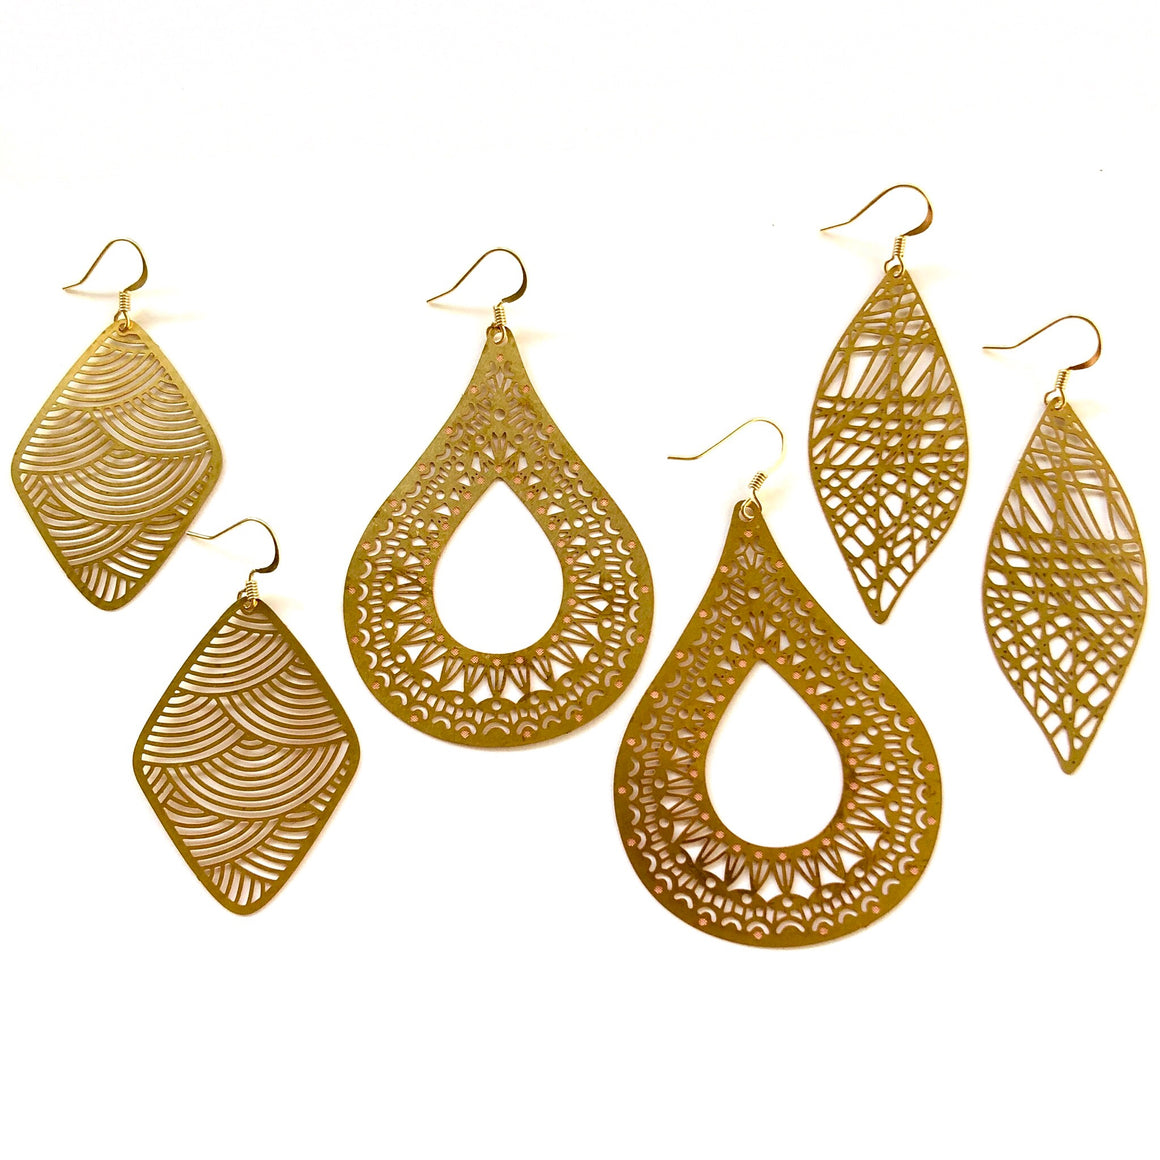 Jenn Golden Earrings - Nikki Smith Designs